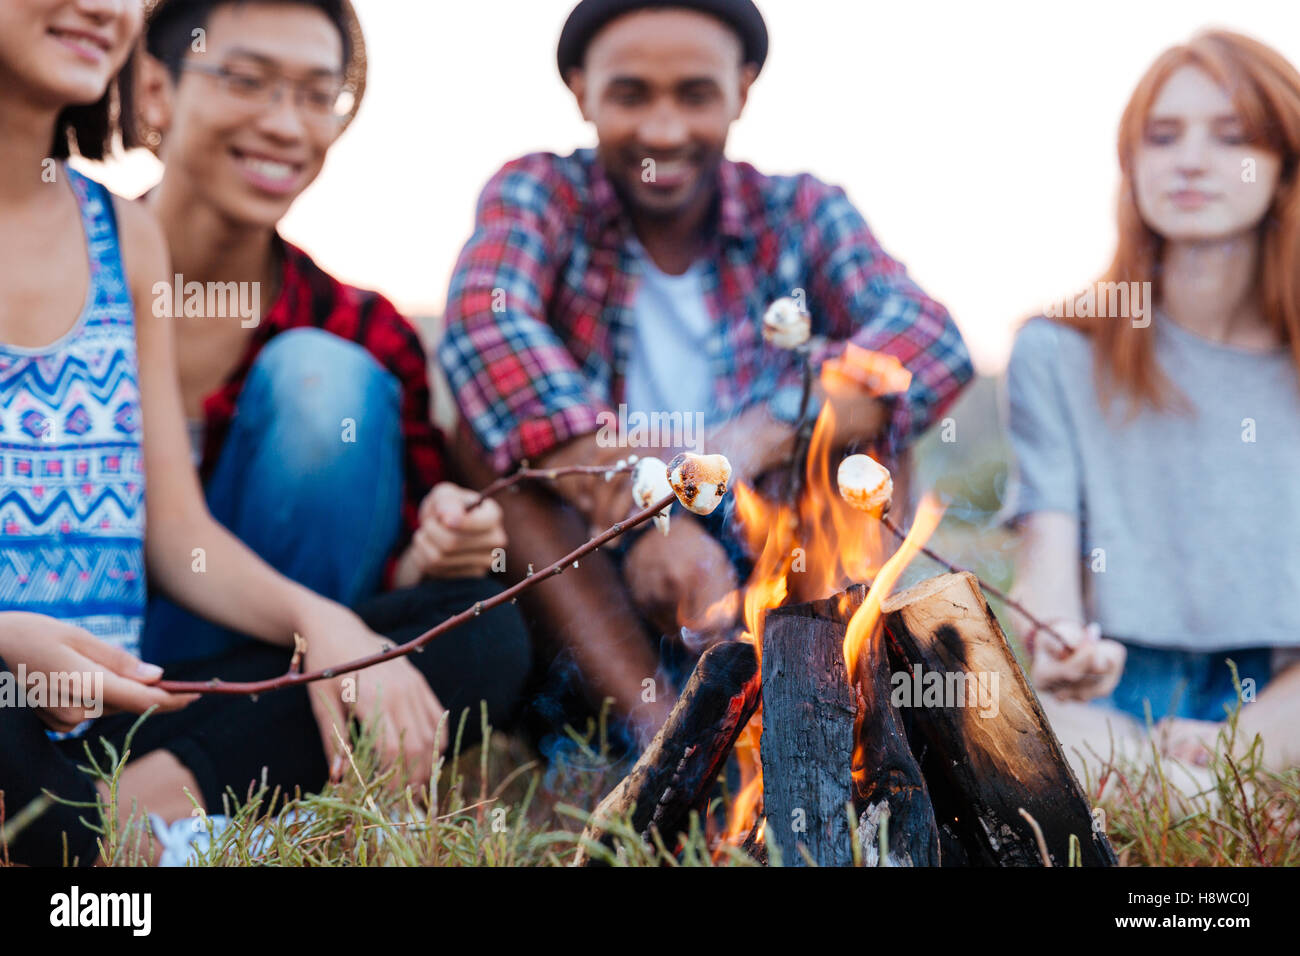 Multiethnic group of of cheerful young people talking and preparing marshmallows on bonfire outdoors in summer - Stock Image